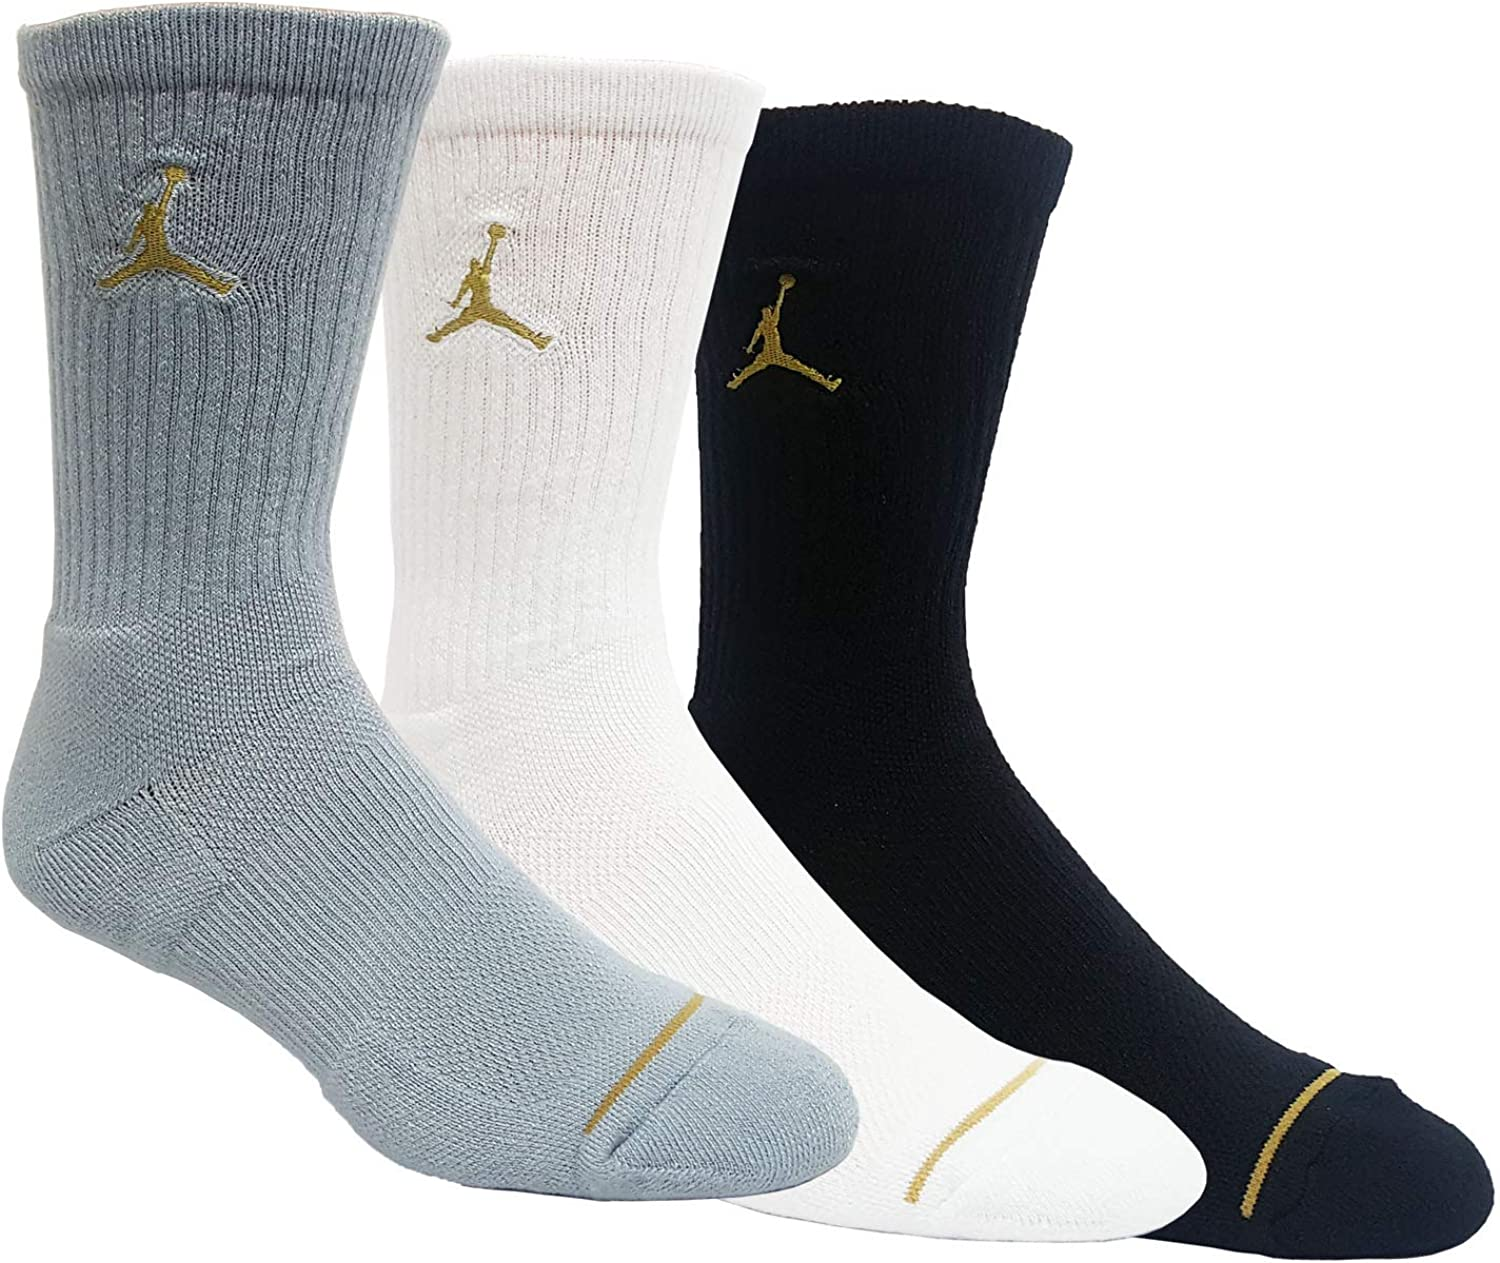 Nike Jordan Jumpman Crew Basketball Socks (3 Pair) SX5545